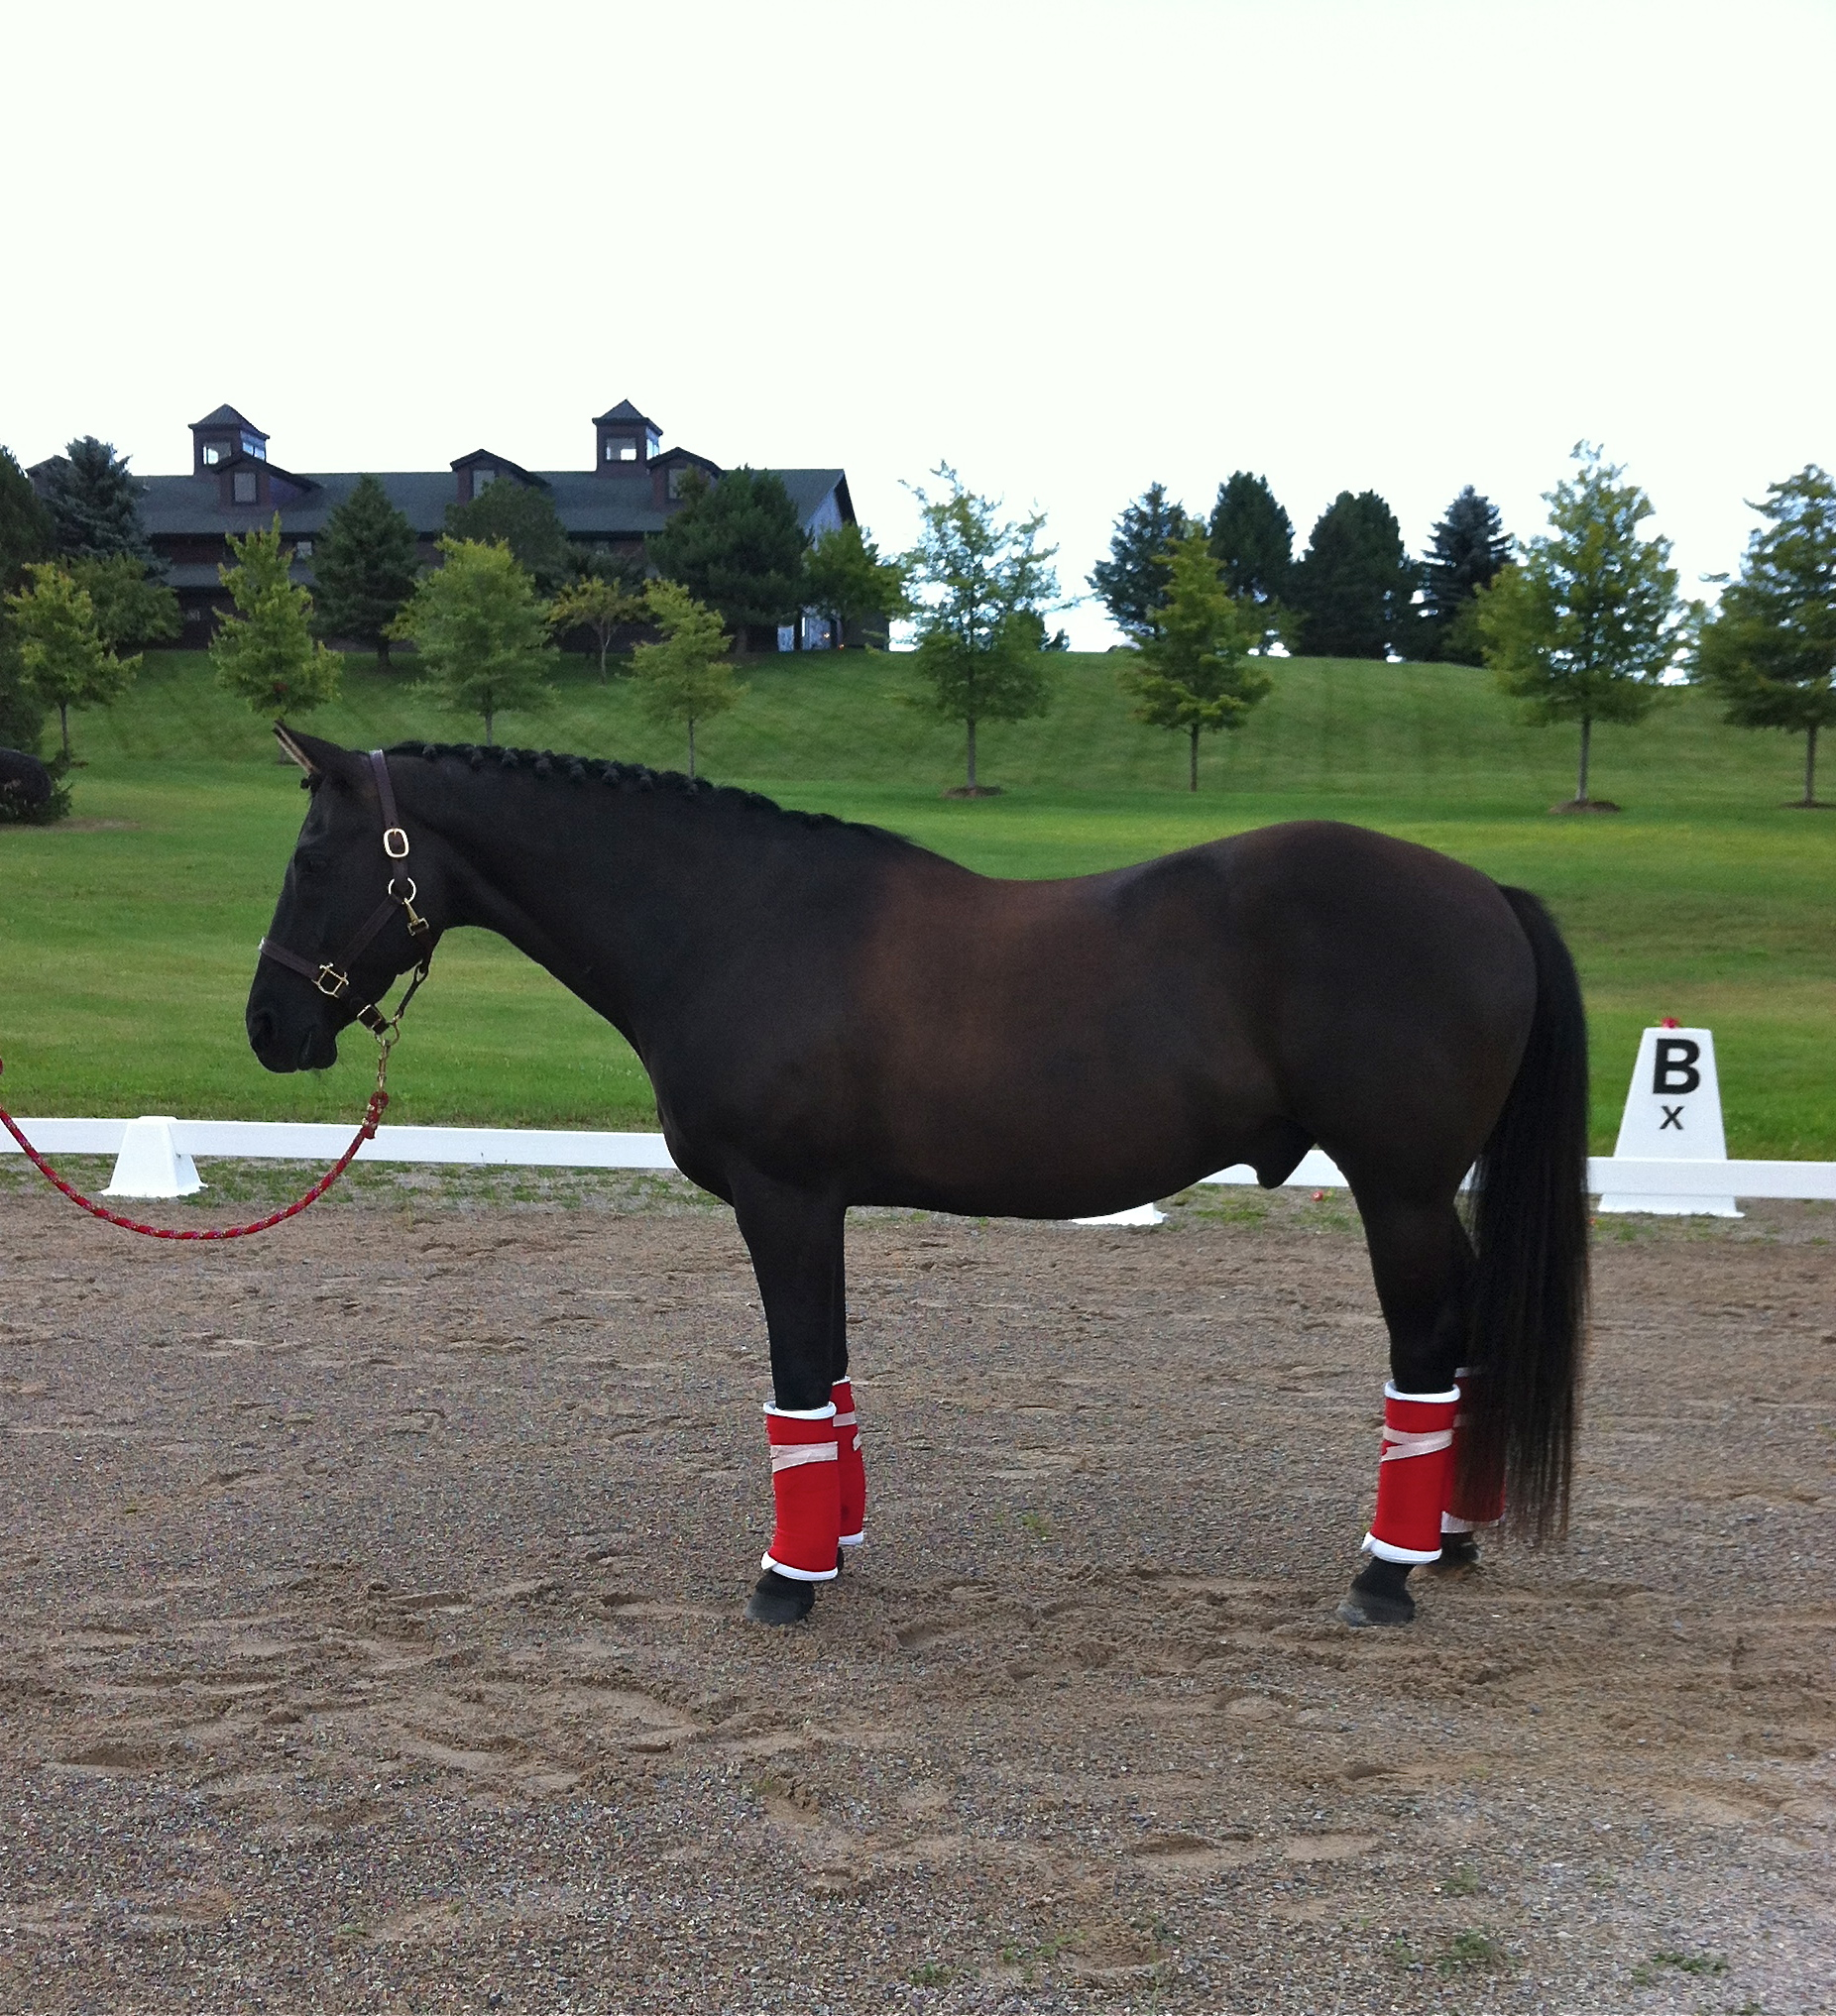 The Black, all round favorite, this summer was this beautiful boy. An aged quarter horse, quiet and willing this horse is for sale by owner. Please contact Brek-n-Ridge for information.